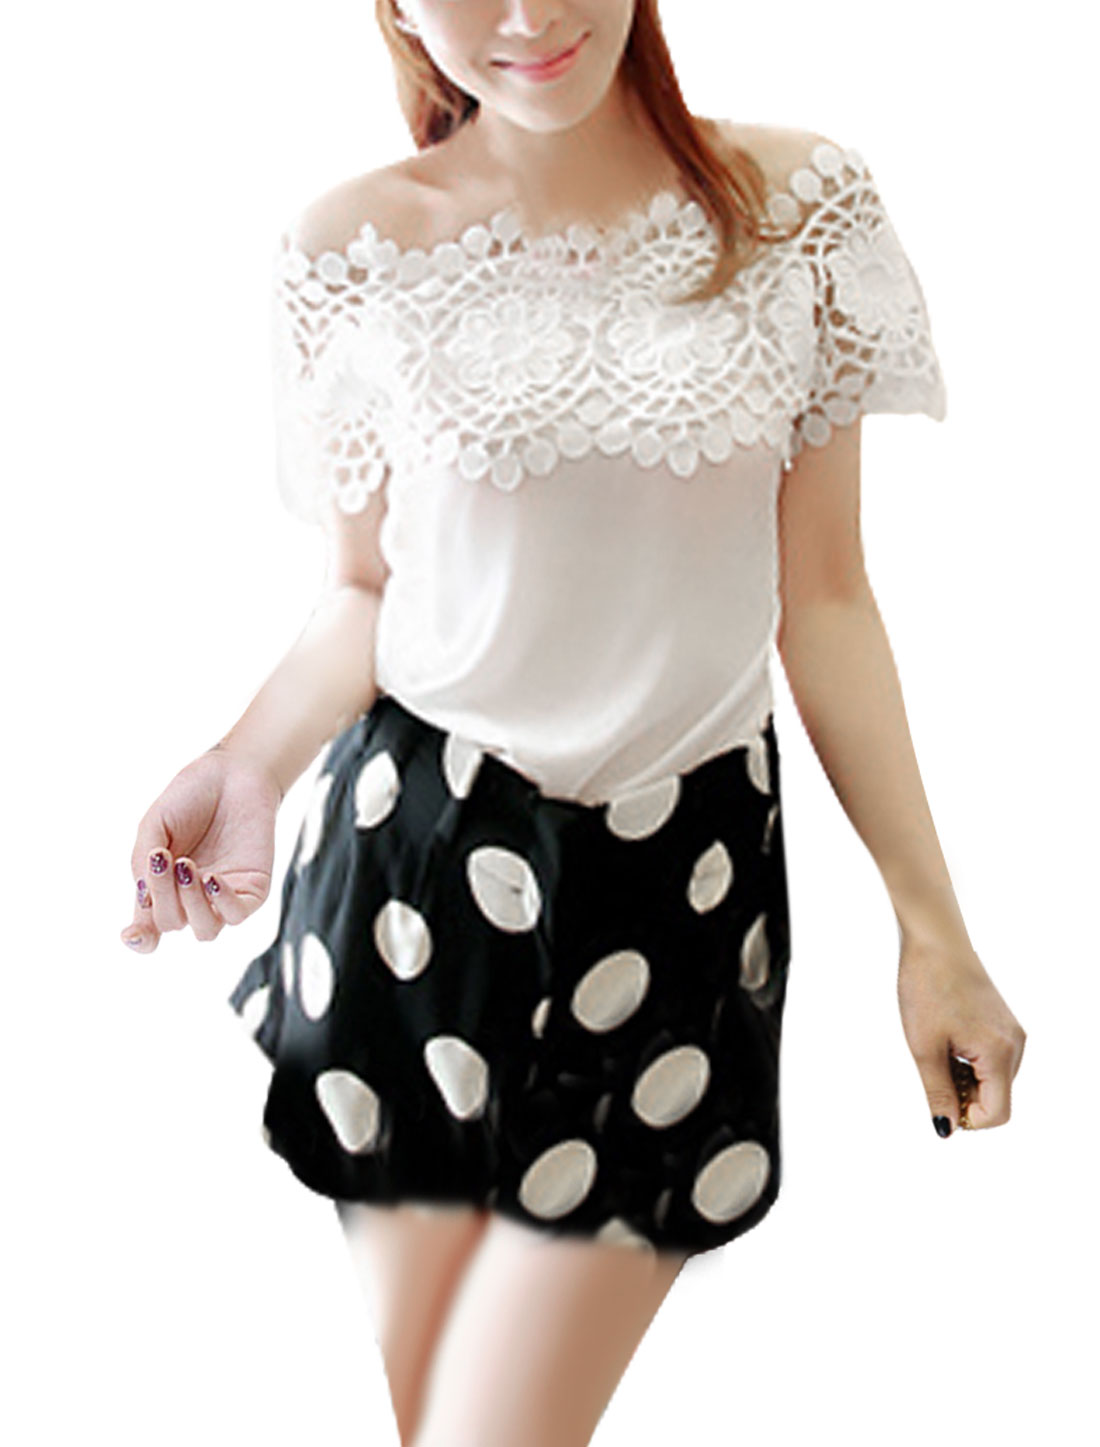 Lady Solid Color Crochet Short-sleeved Loose Tops Blouses White S